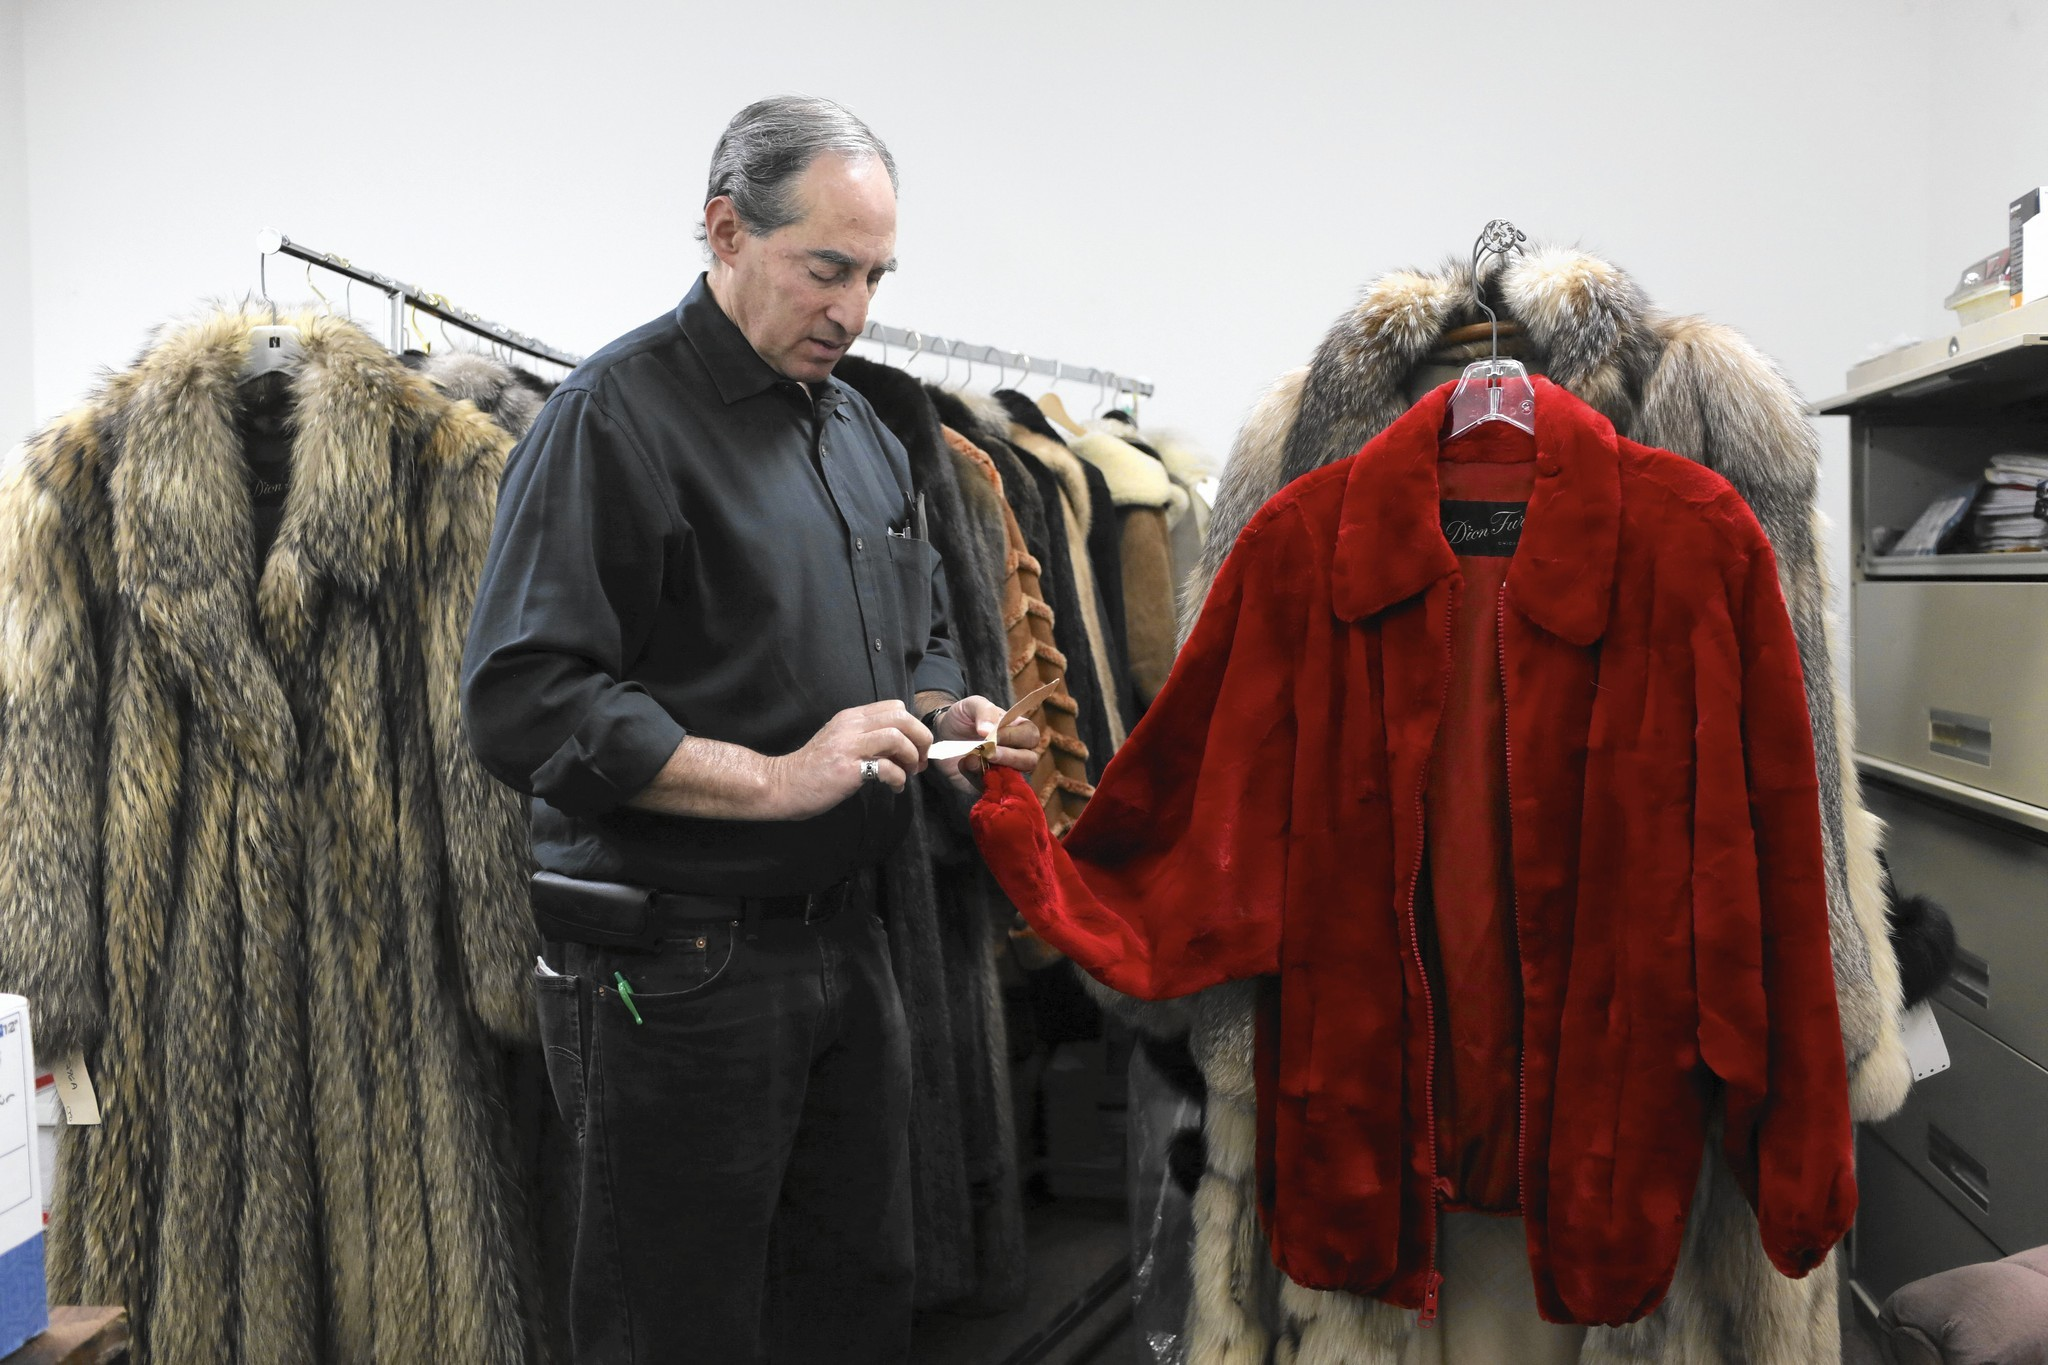 Furrier who defrauded customers tries to explain why